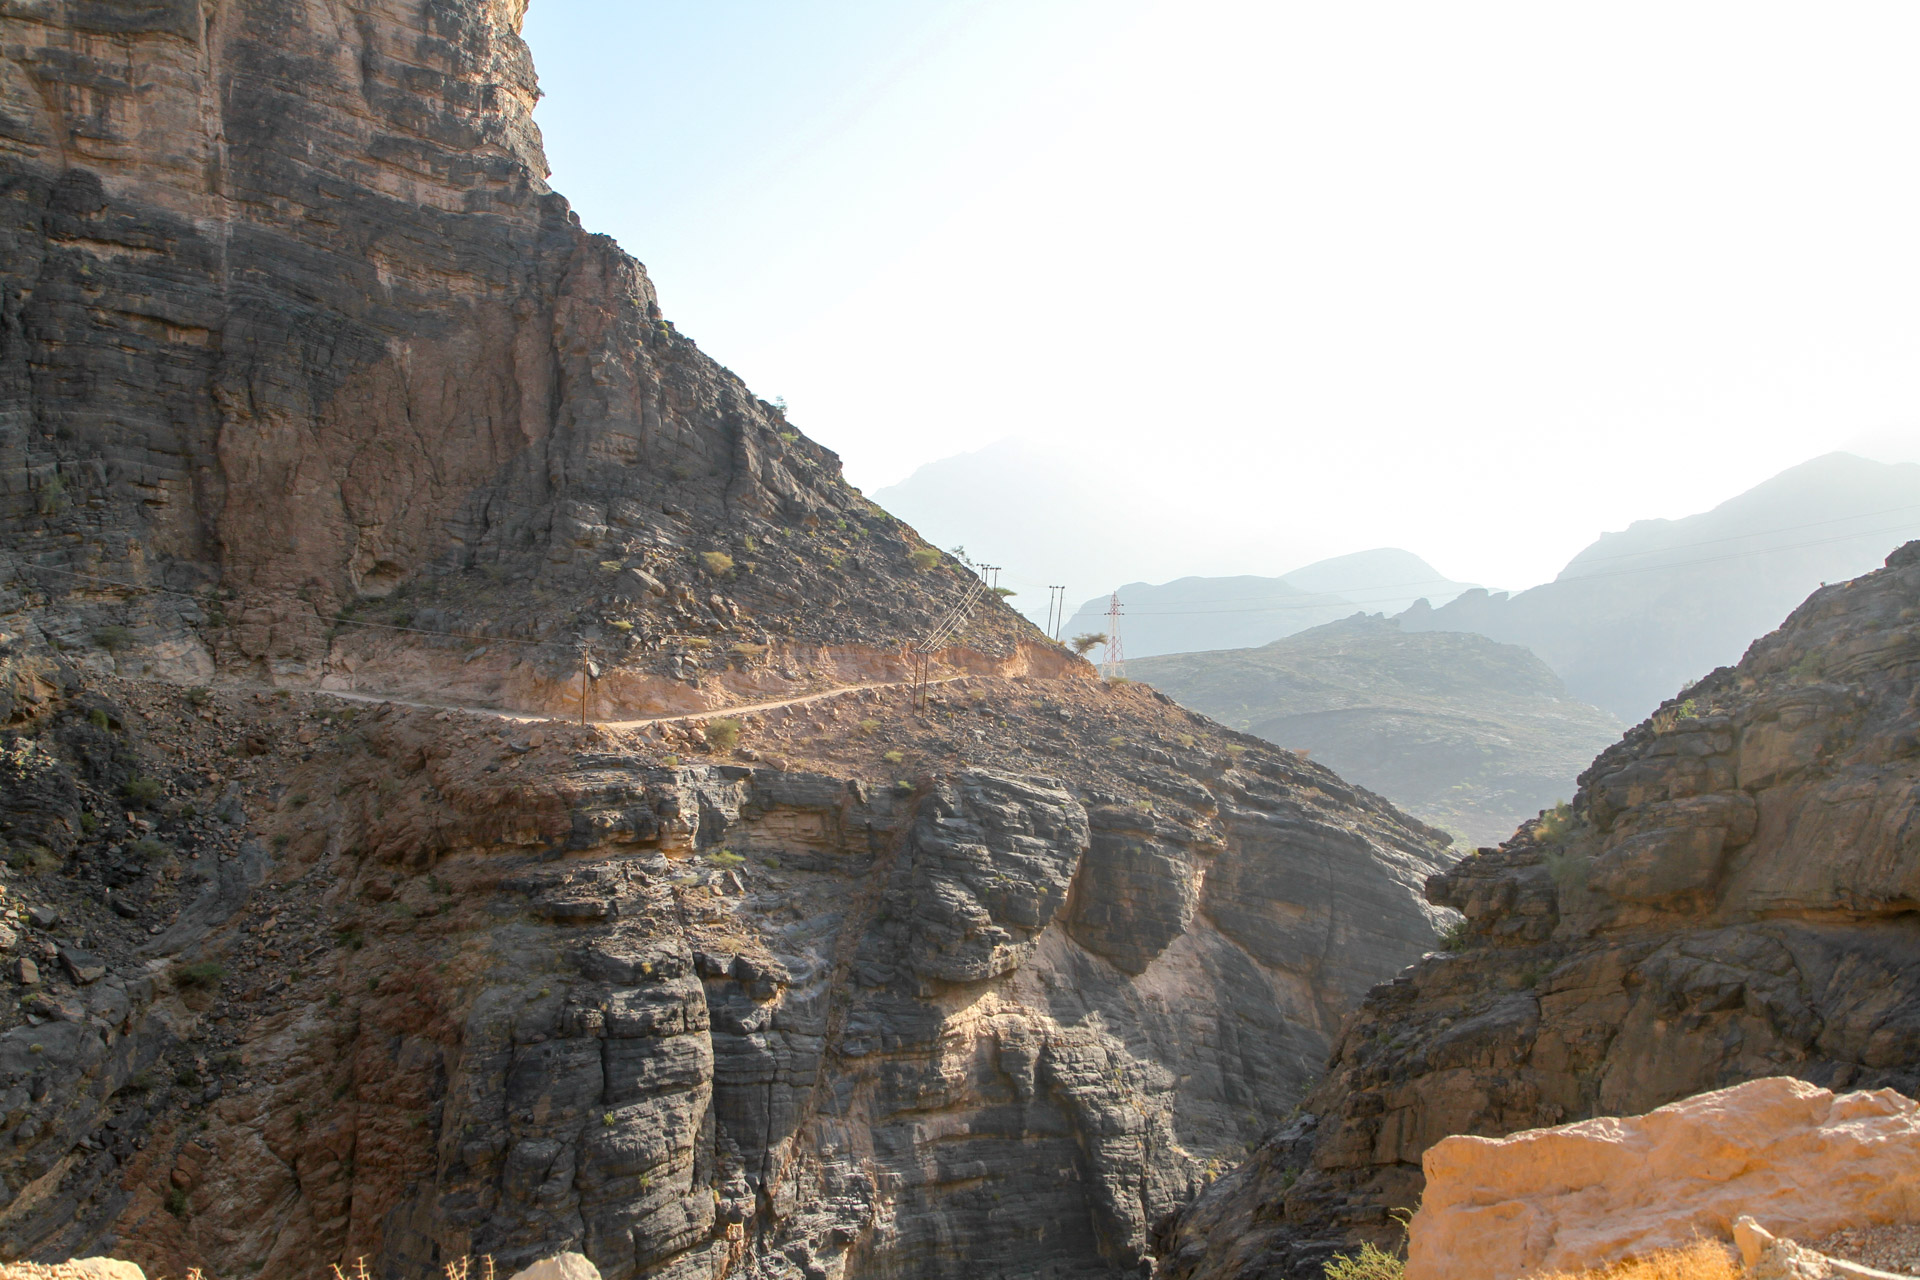 Hajdar Mountain - We came from this road the day before...